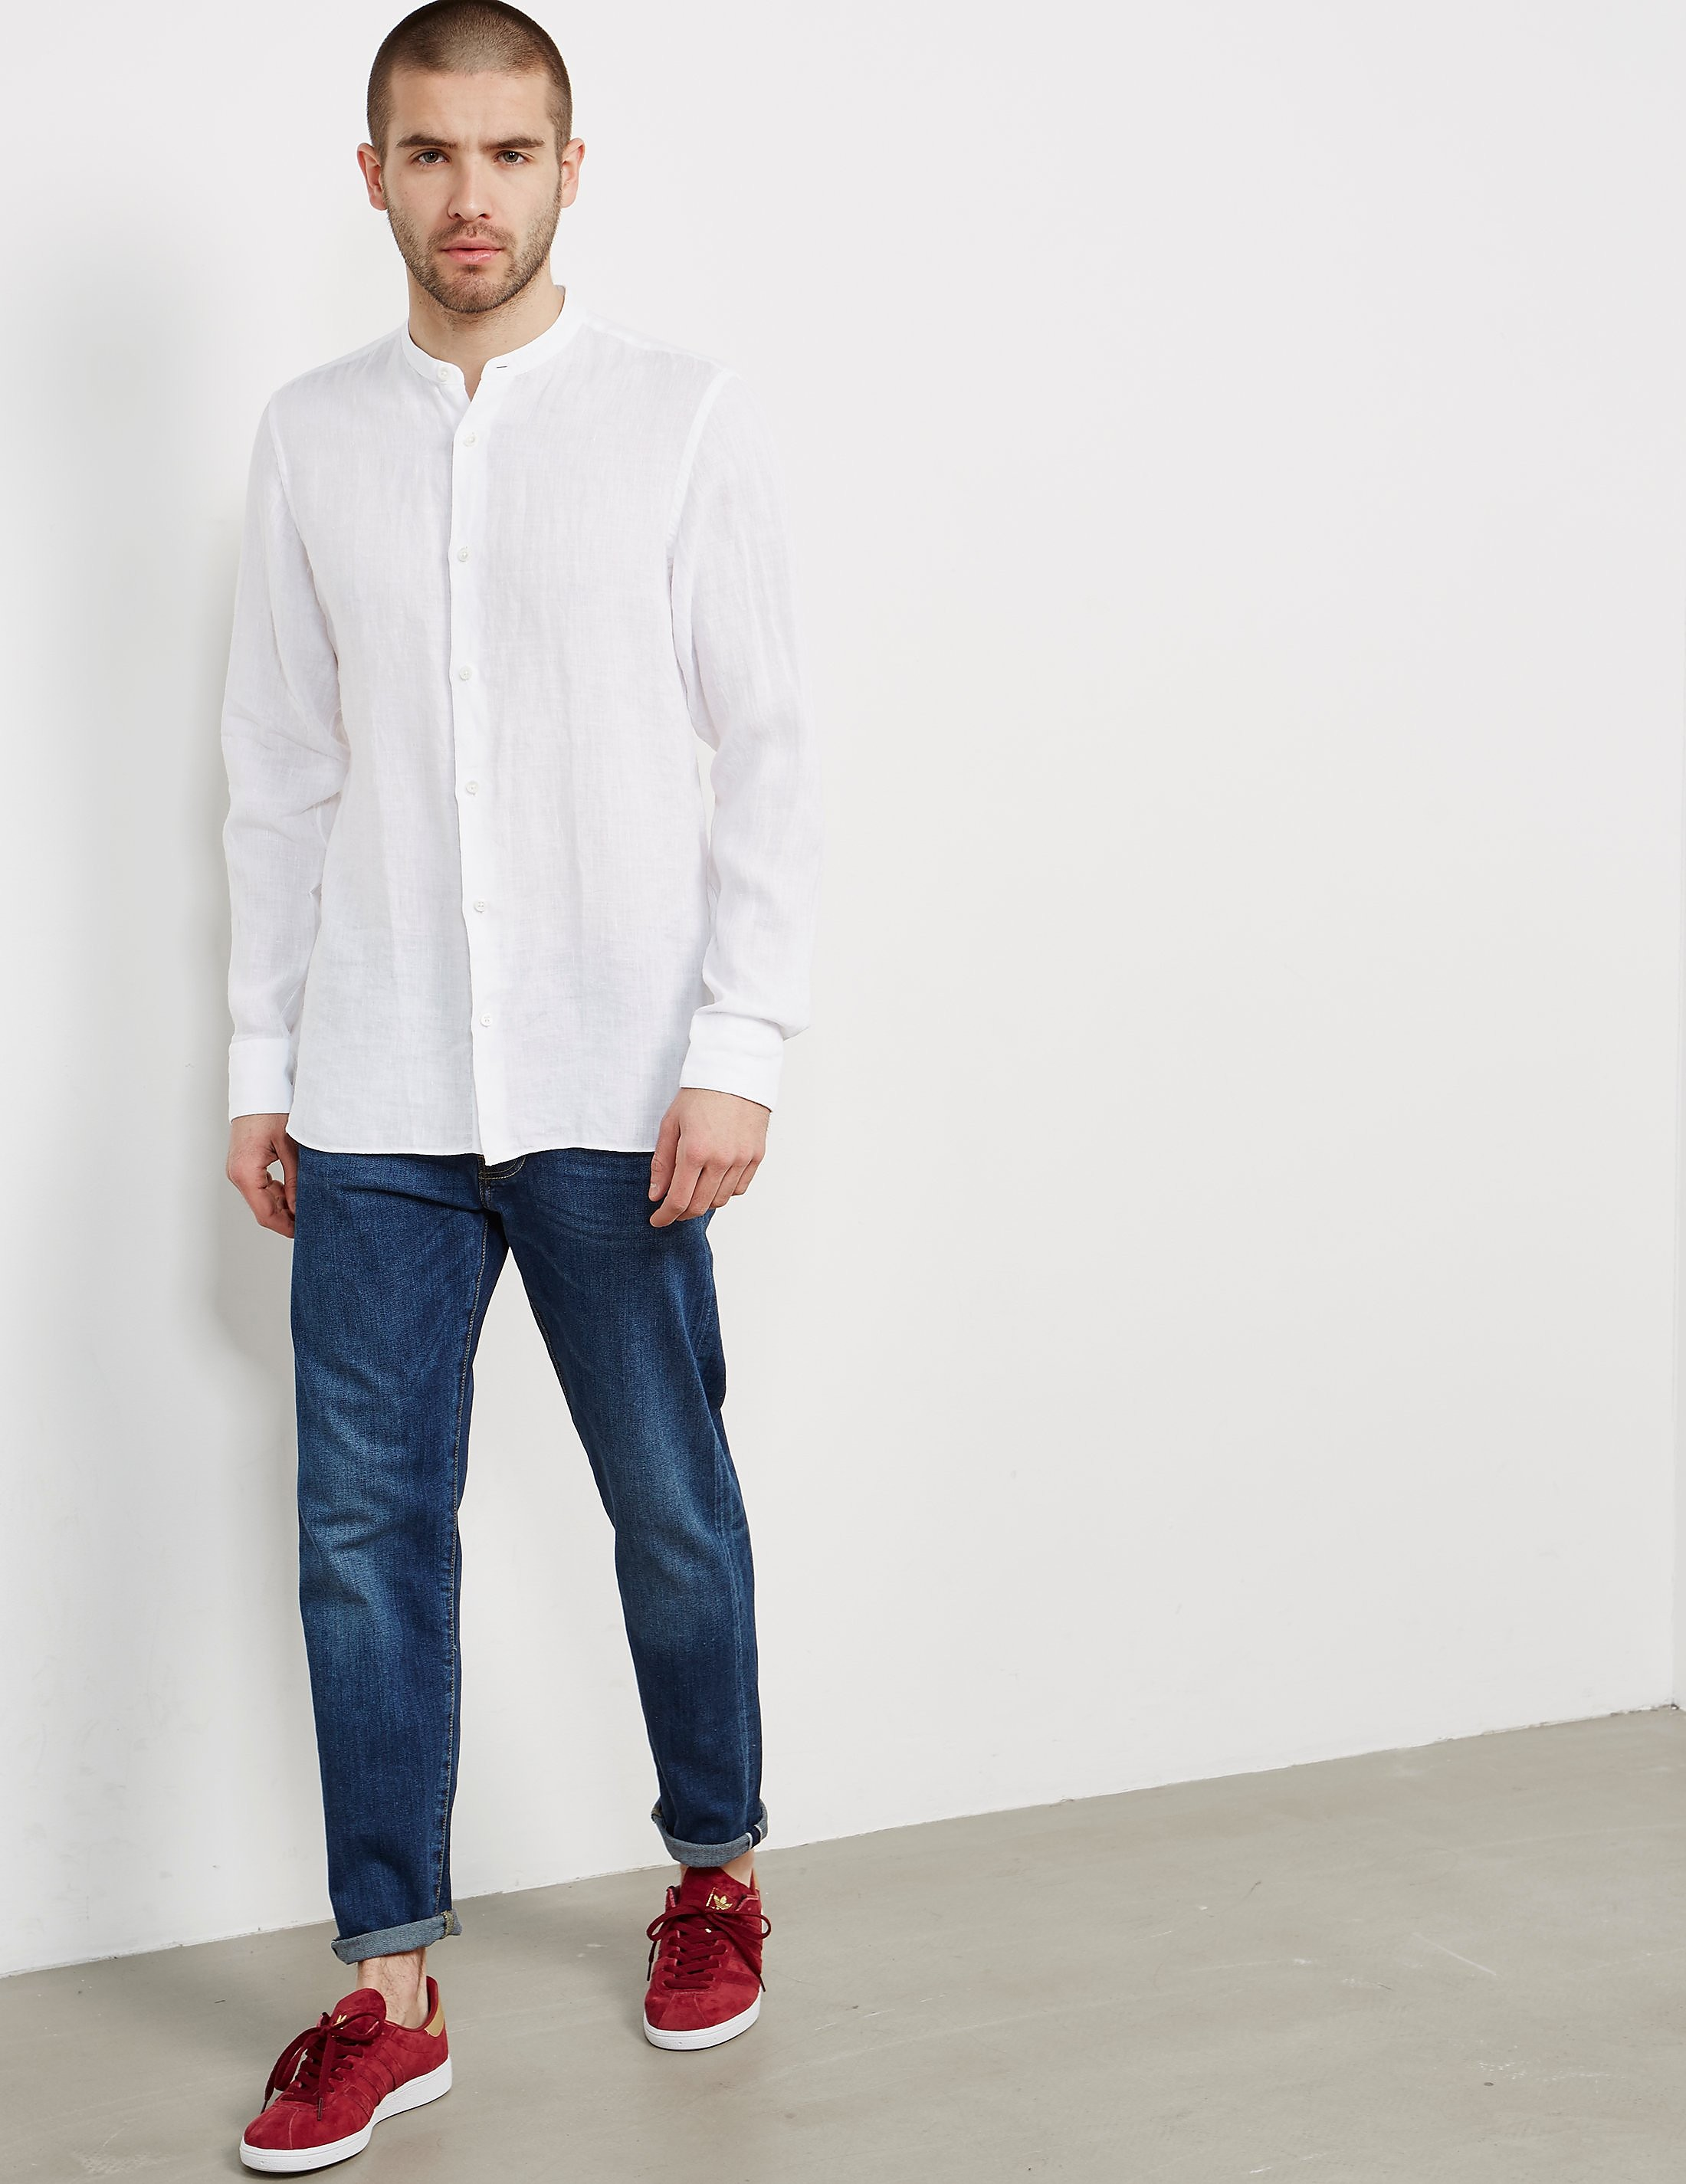 Z Zegna Guru Collar Long Sleeve Shirt